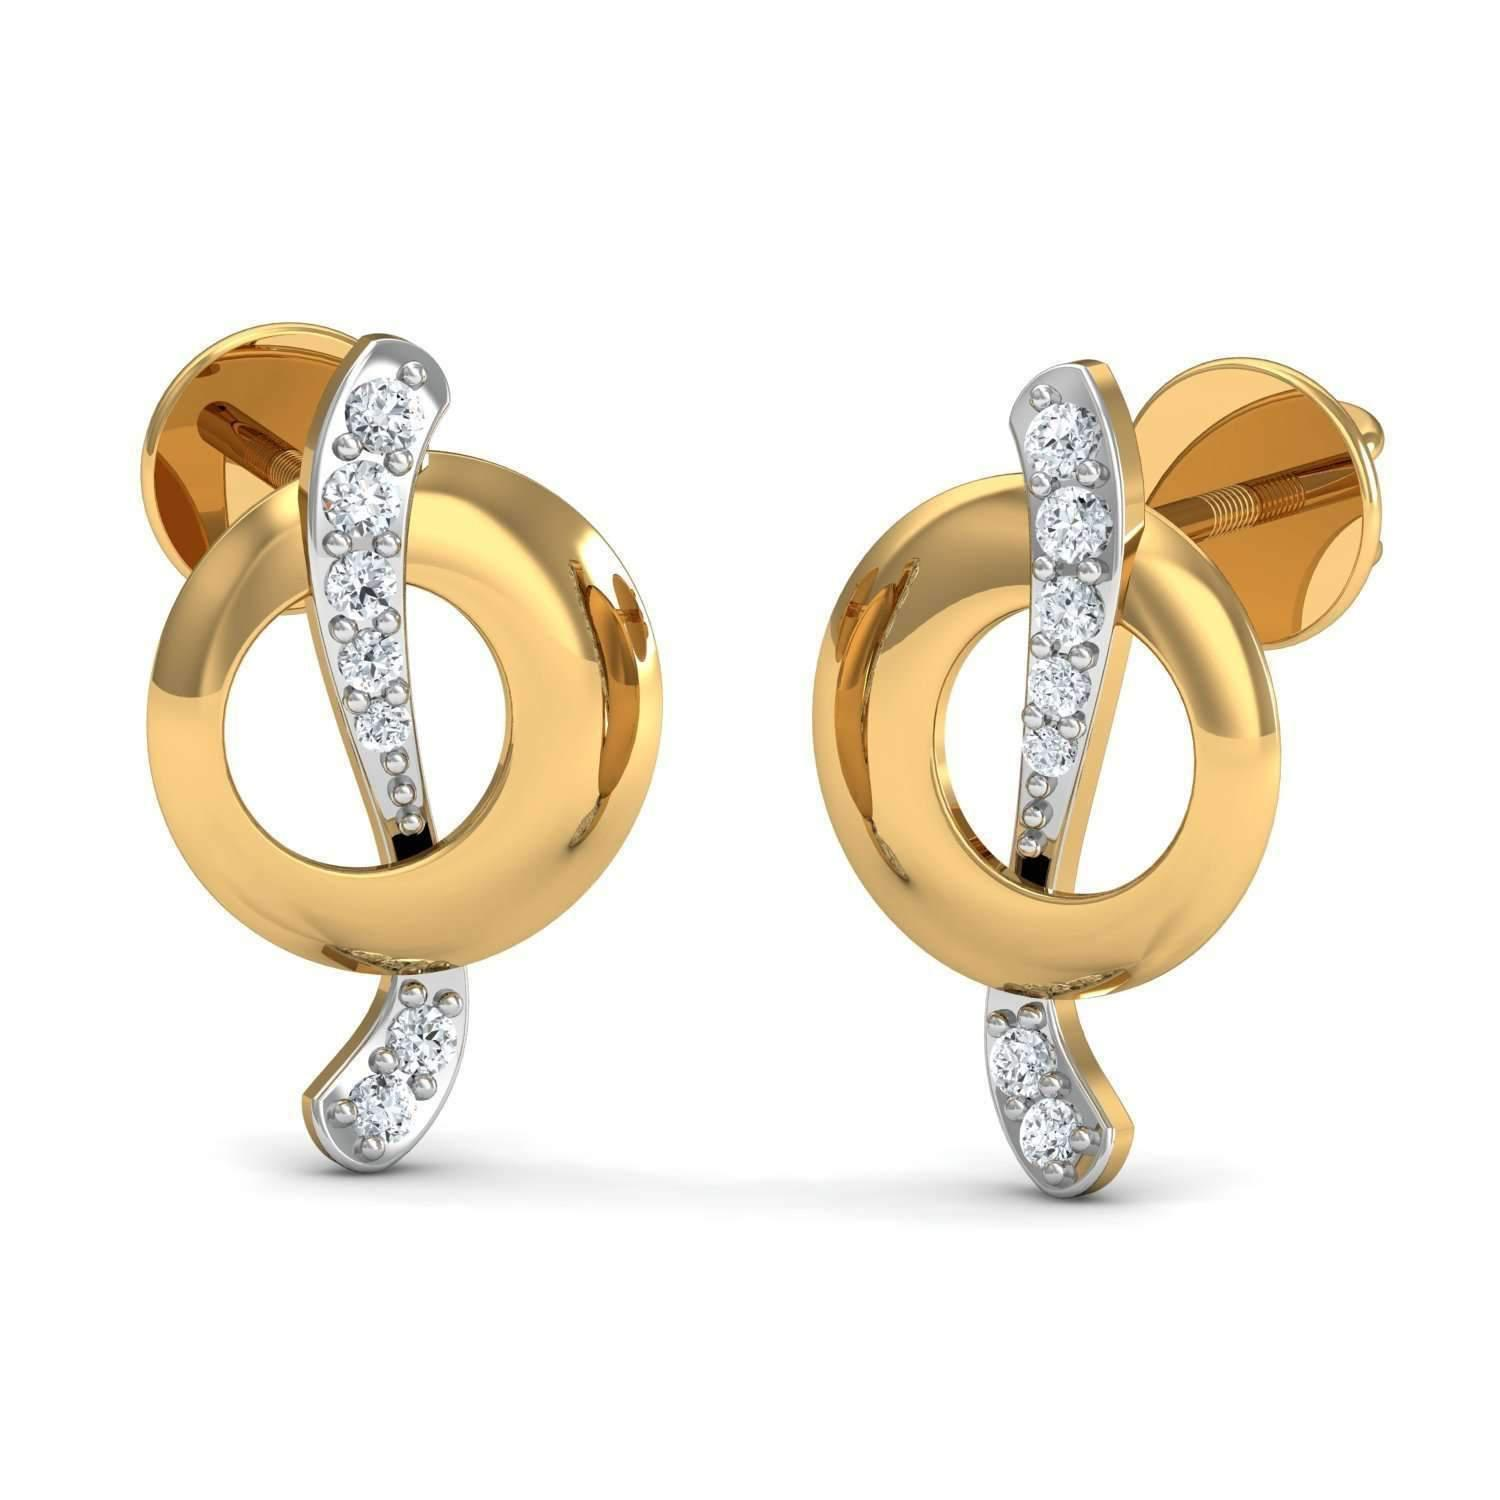 Diamoire Jewels Pave Earrings Inspired by Nature Handmade with 10kt White Gold and 34 Premium Diamonds NV99Jvx5ZR